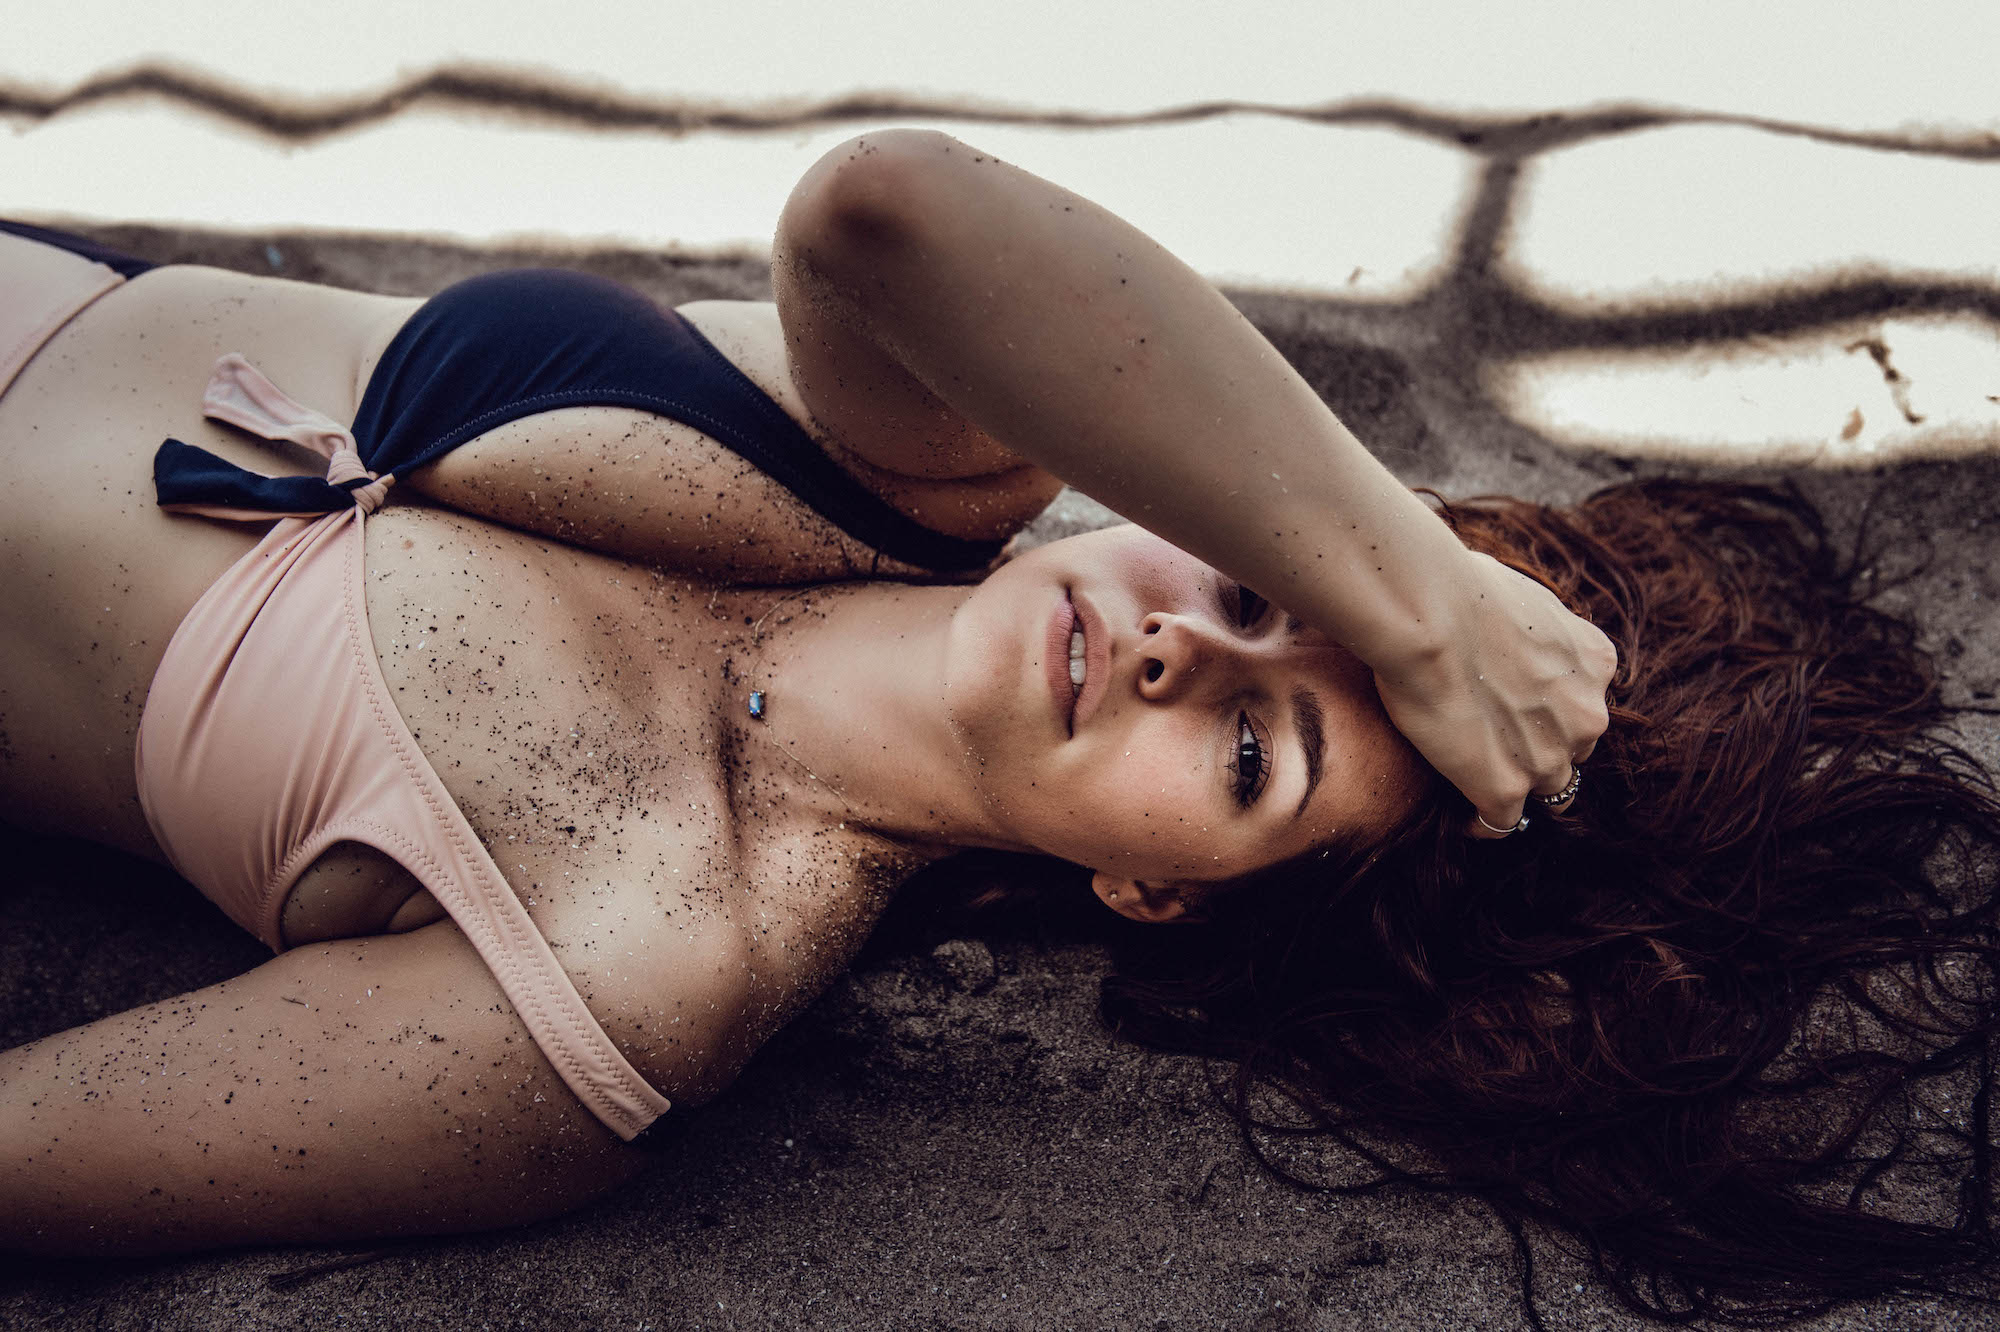 Brunette woman in bathing suit laying down intimate boudoir photography New York City outdoors